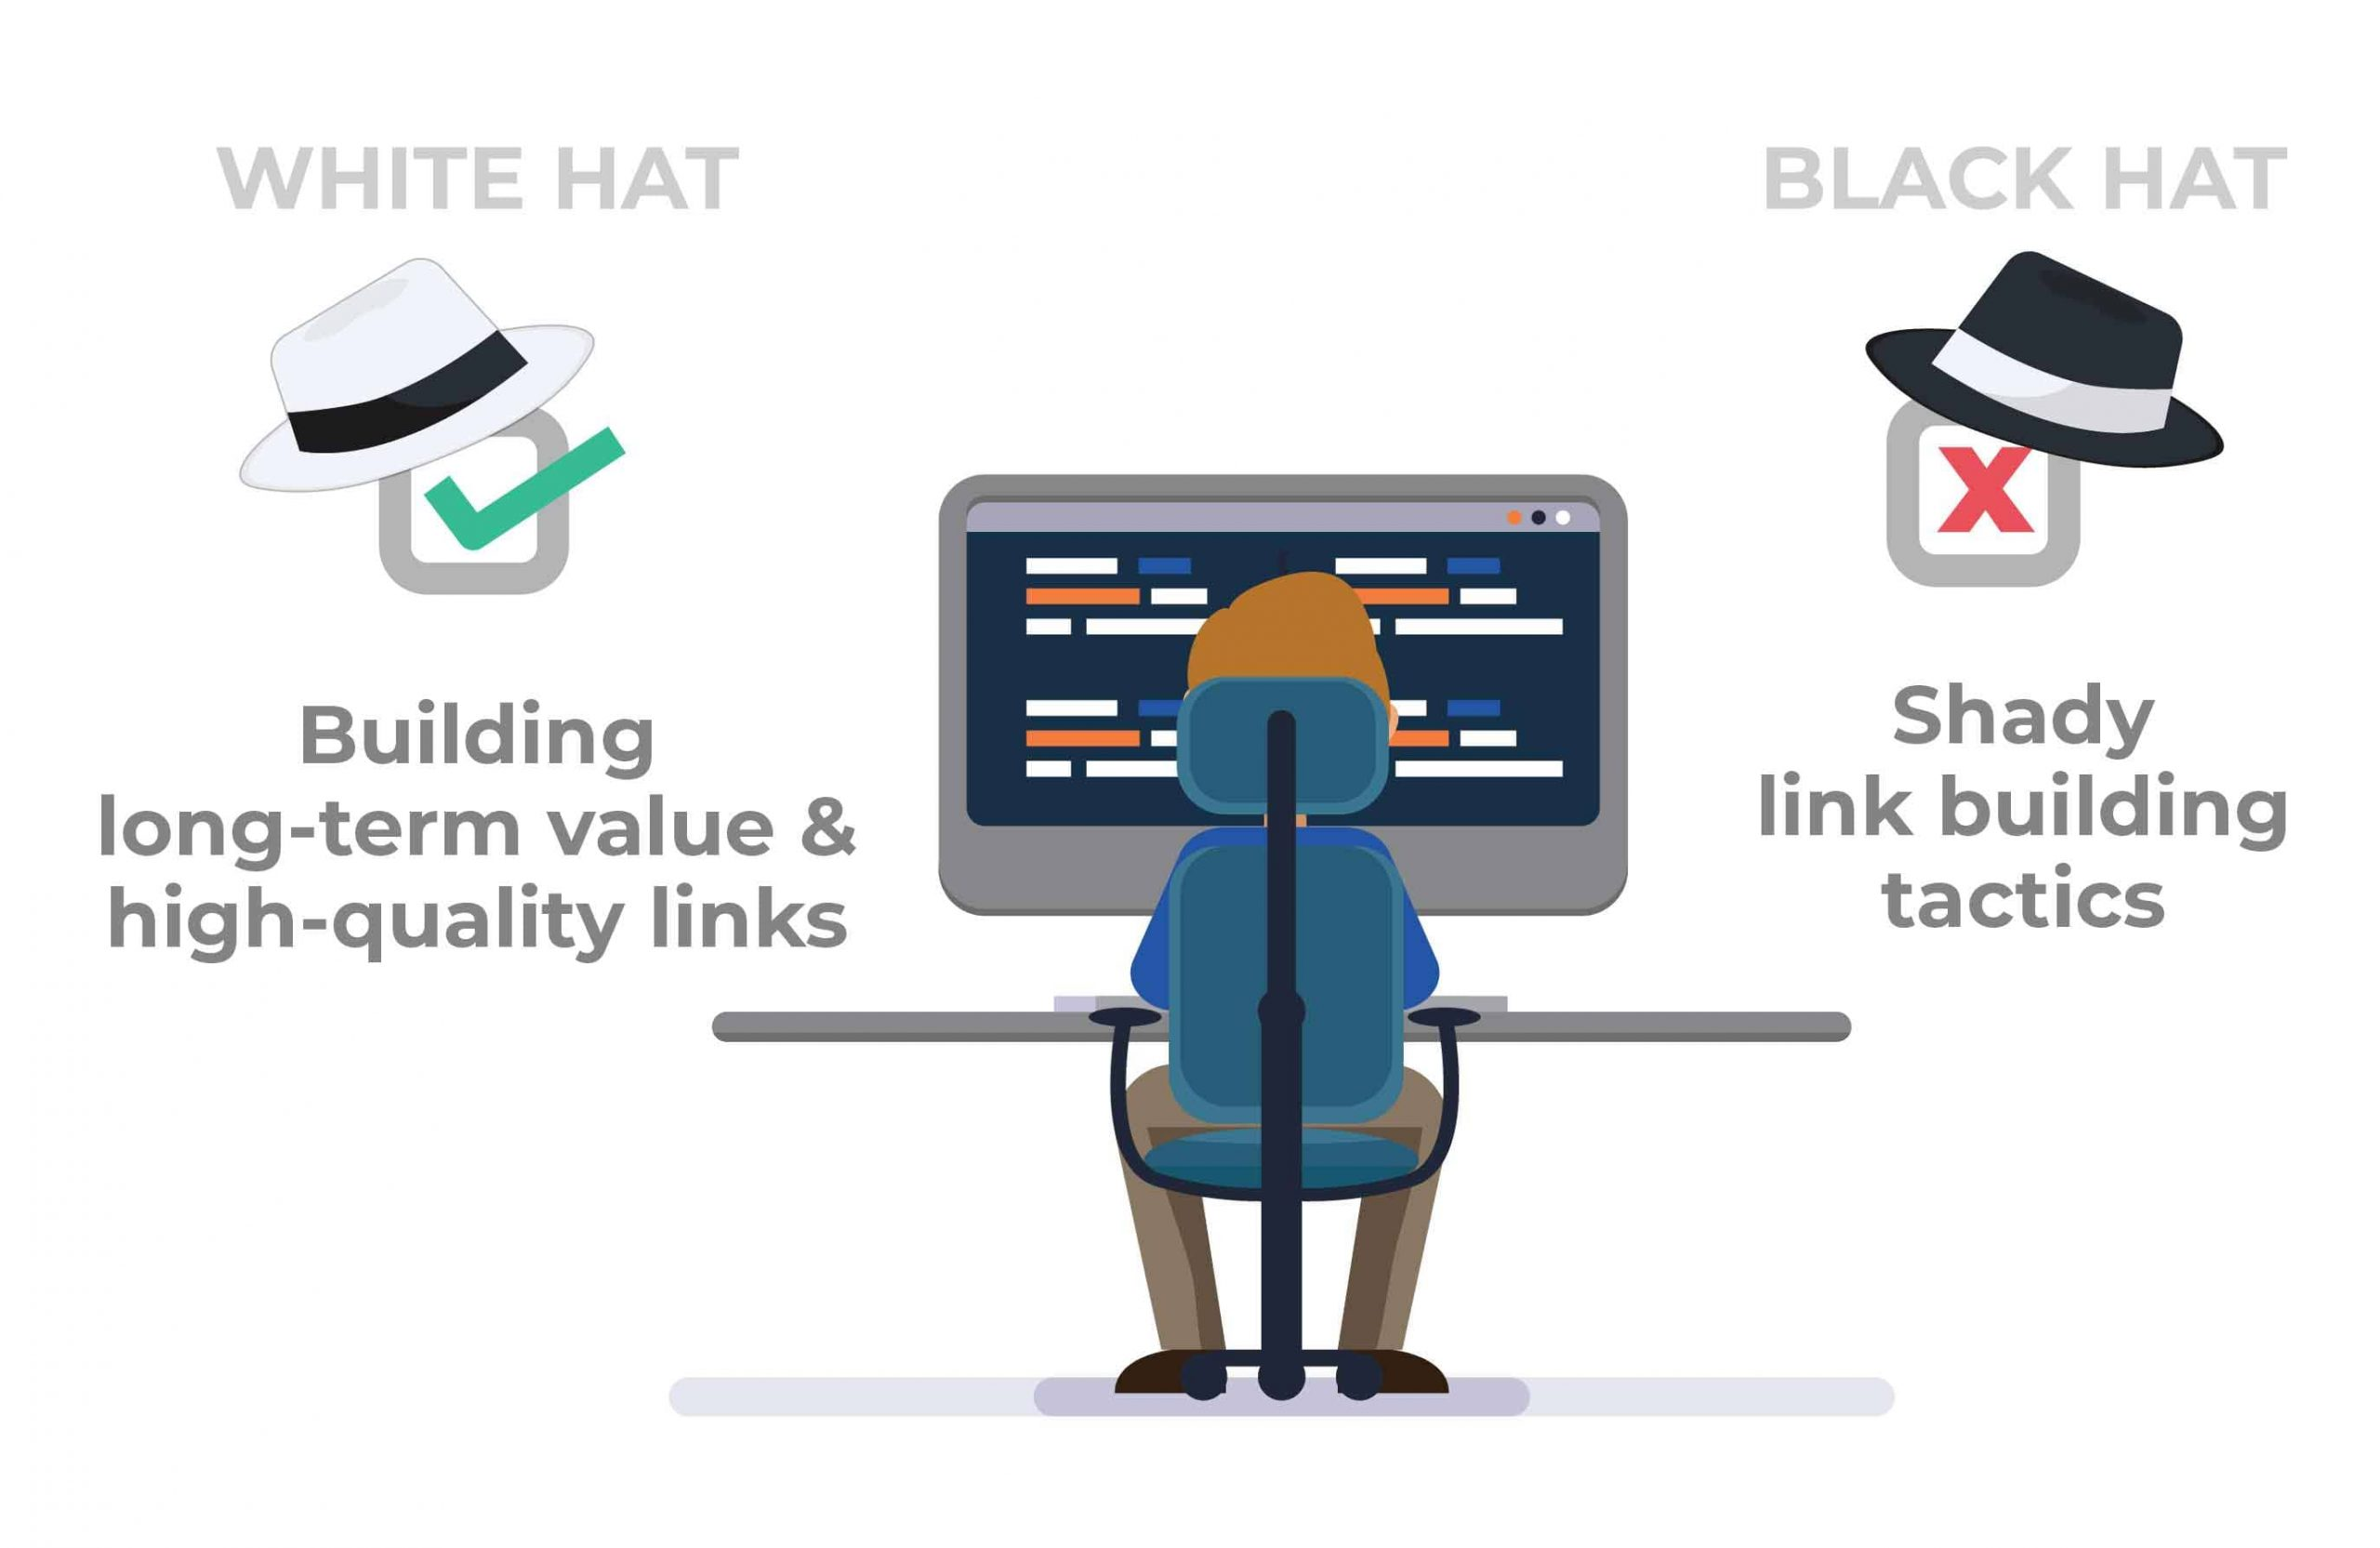 Black hat and white hat link building